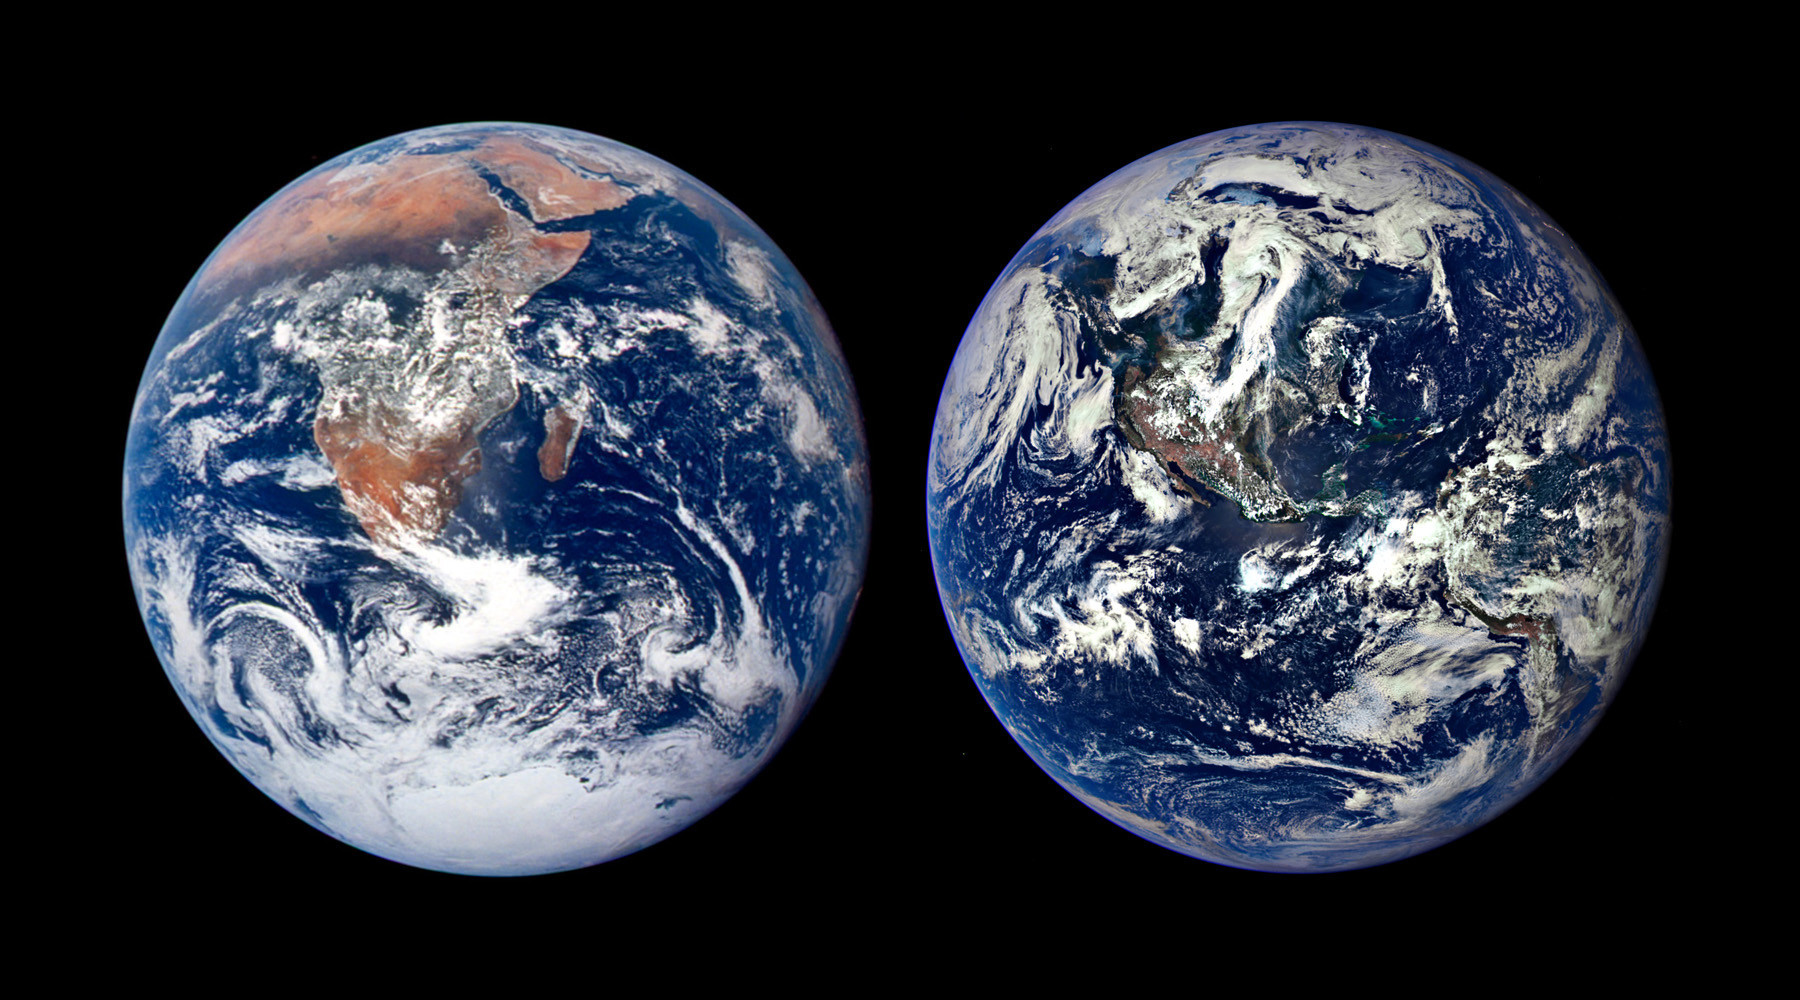 NASA Photos Of Earth Comparing The Planet To Chicago - The best astronomy photographs of 2015 are epic